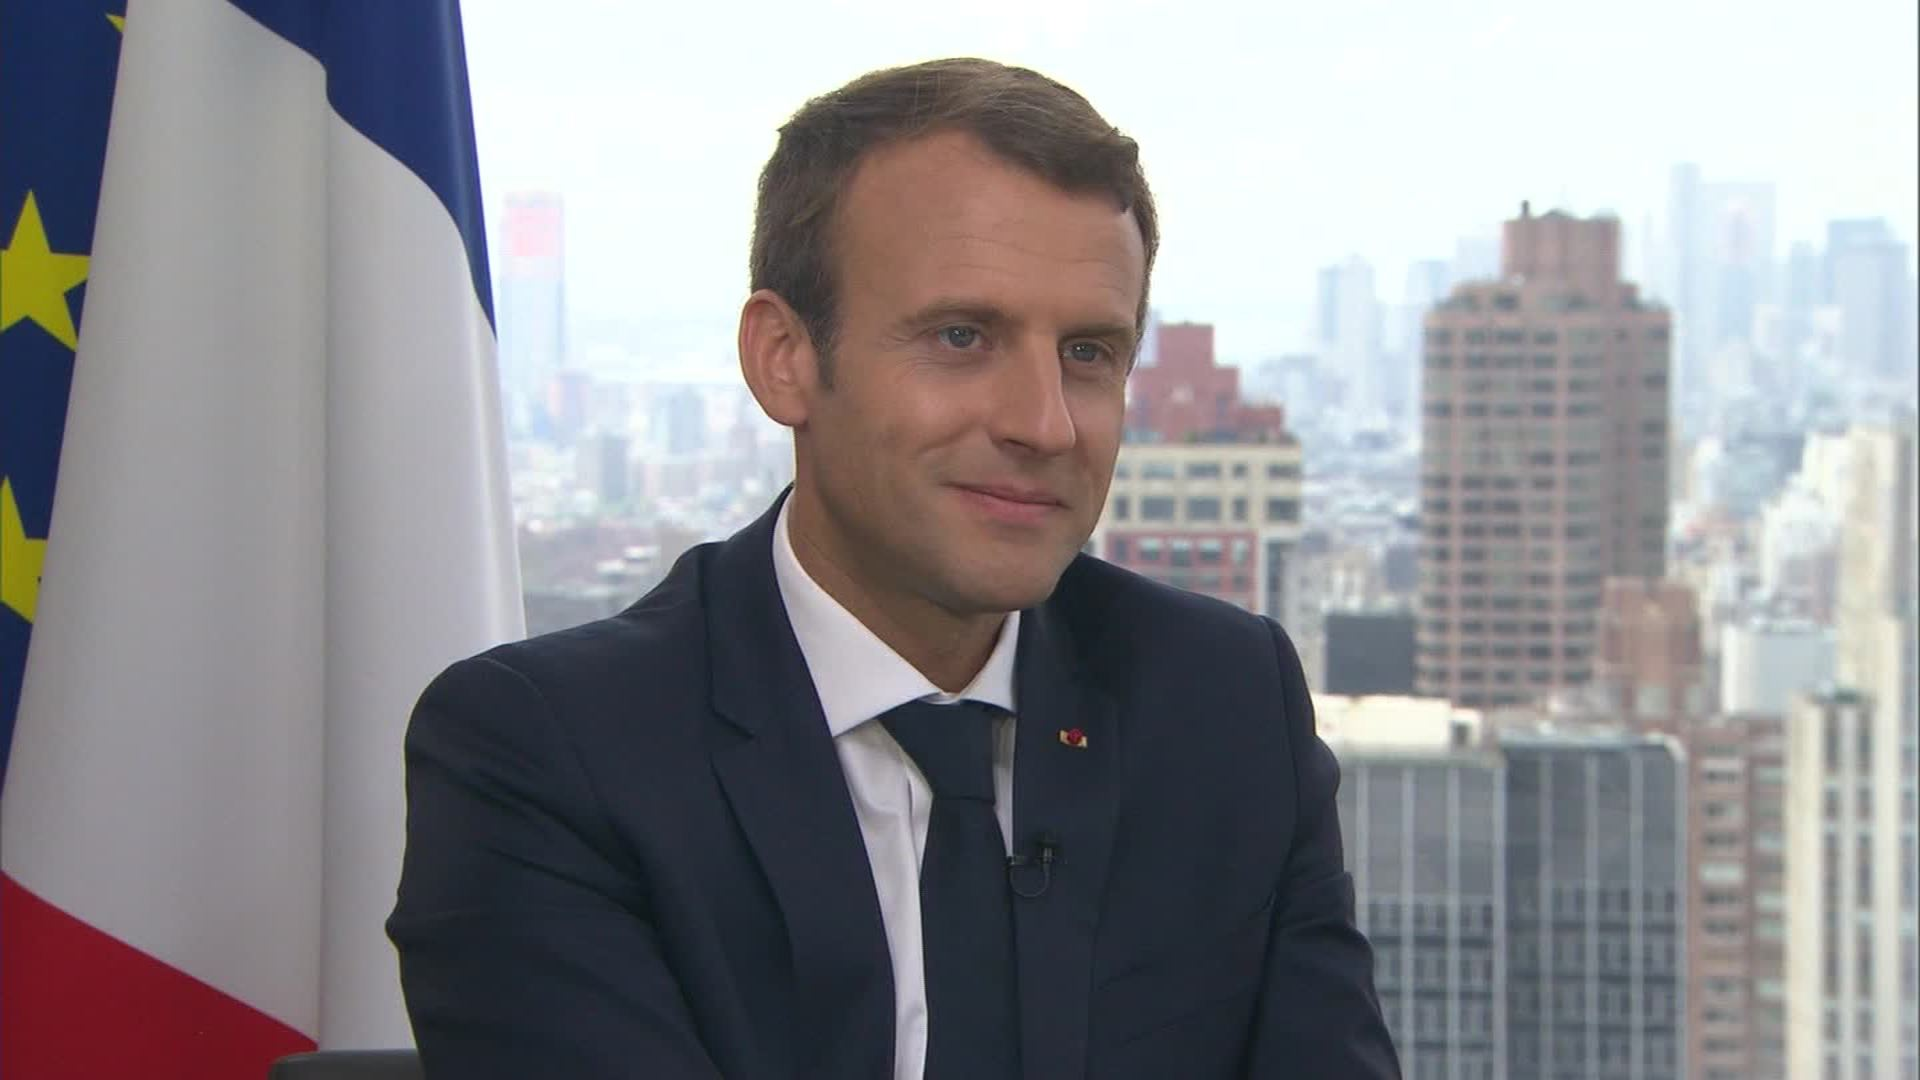 President Macron On What Love Means To Him Cnn Video